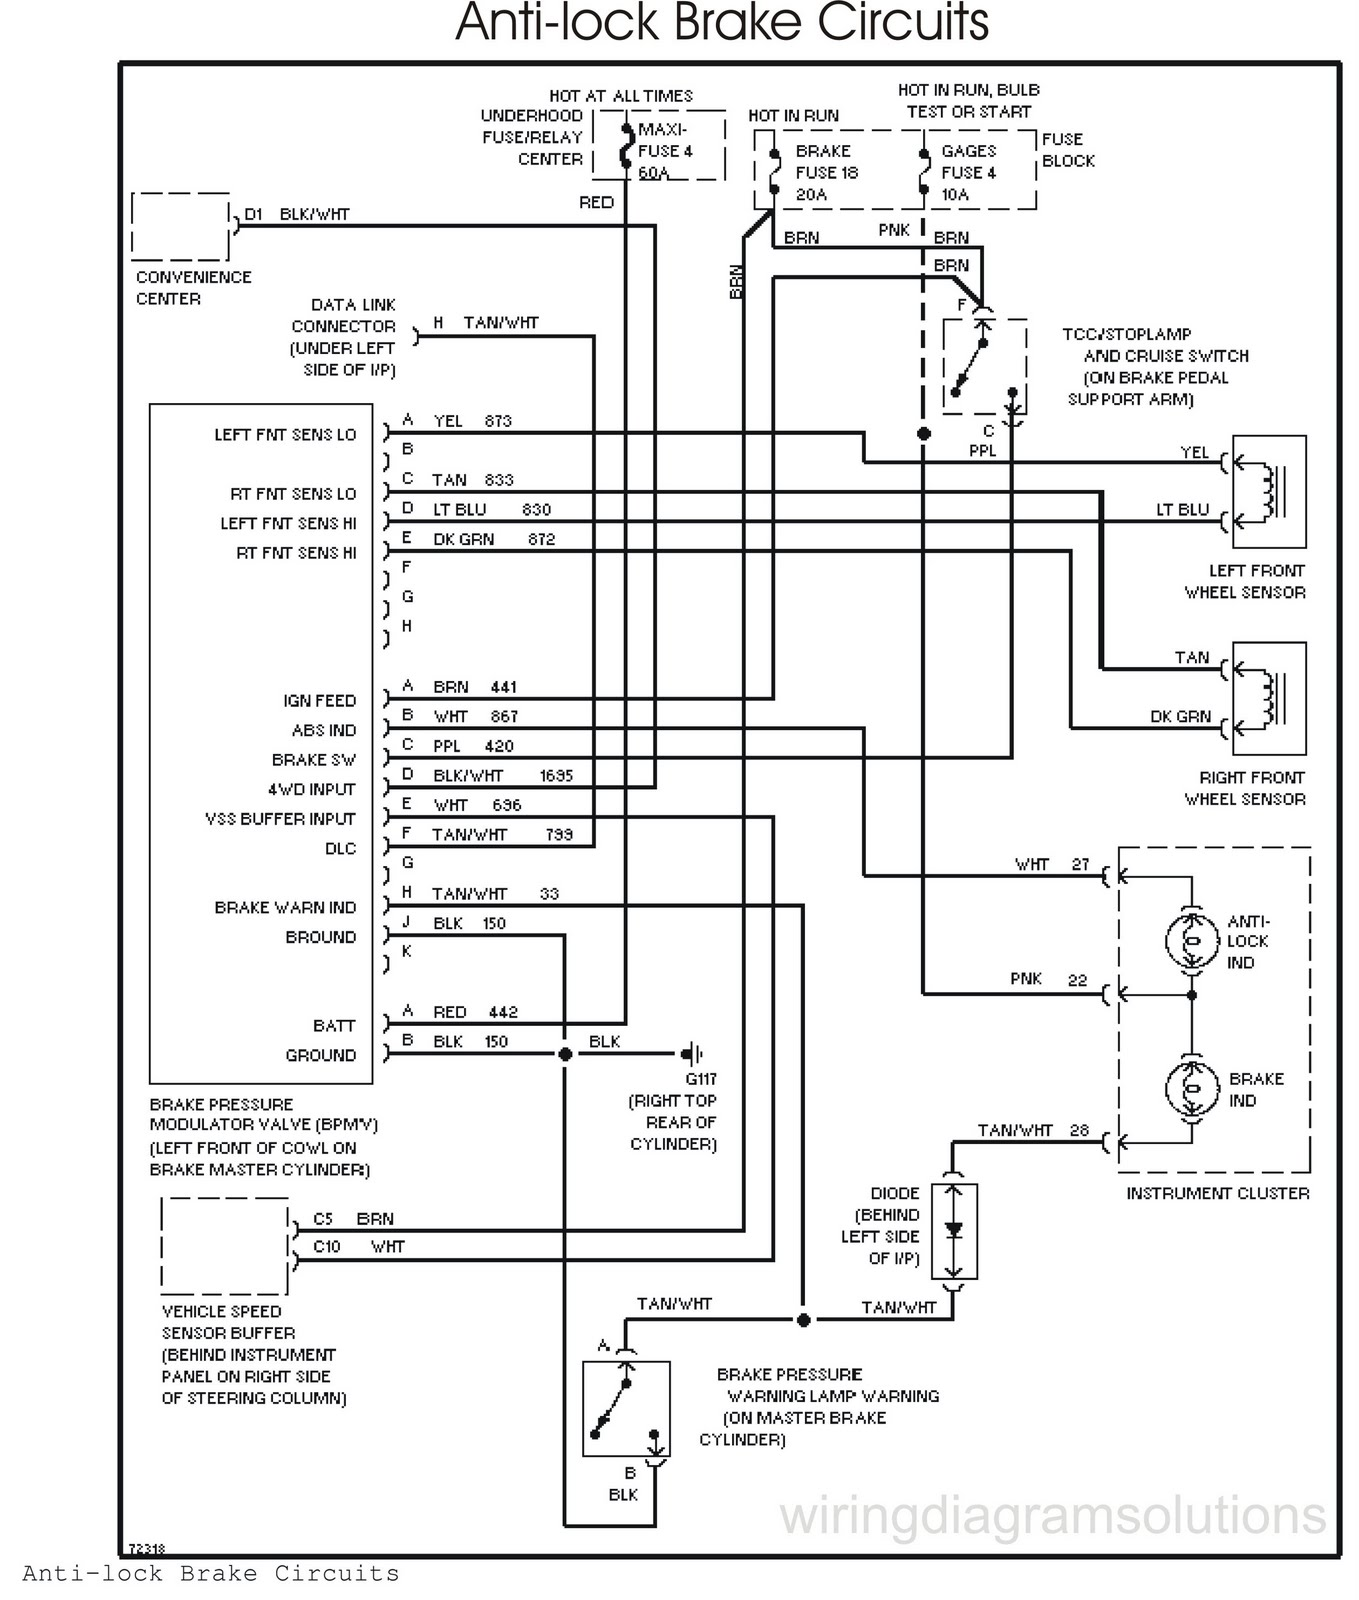 The Chevrolet Tahoe Wiring Schematic Anti Lock Brake